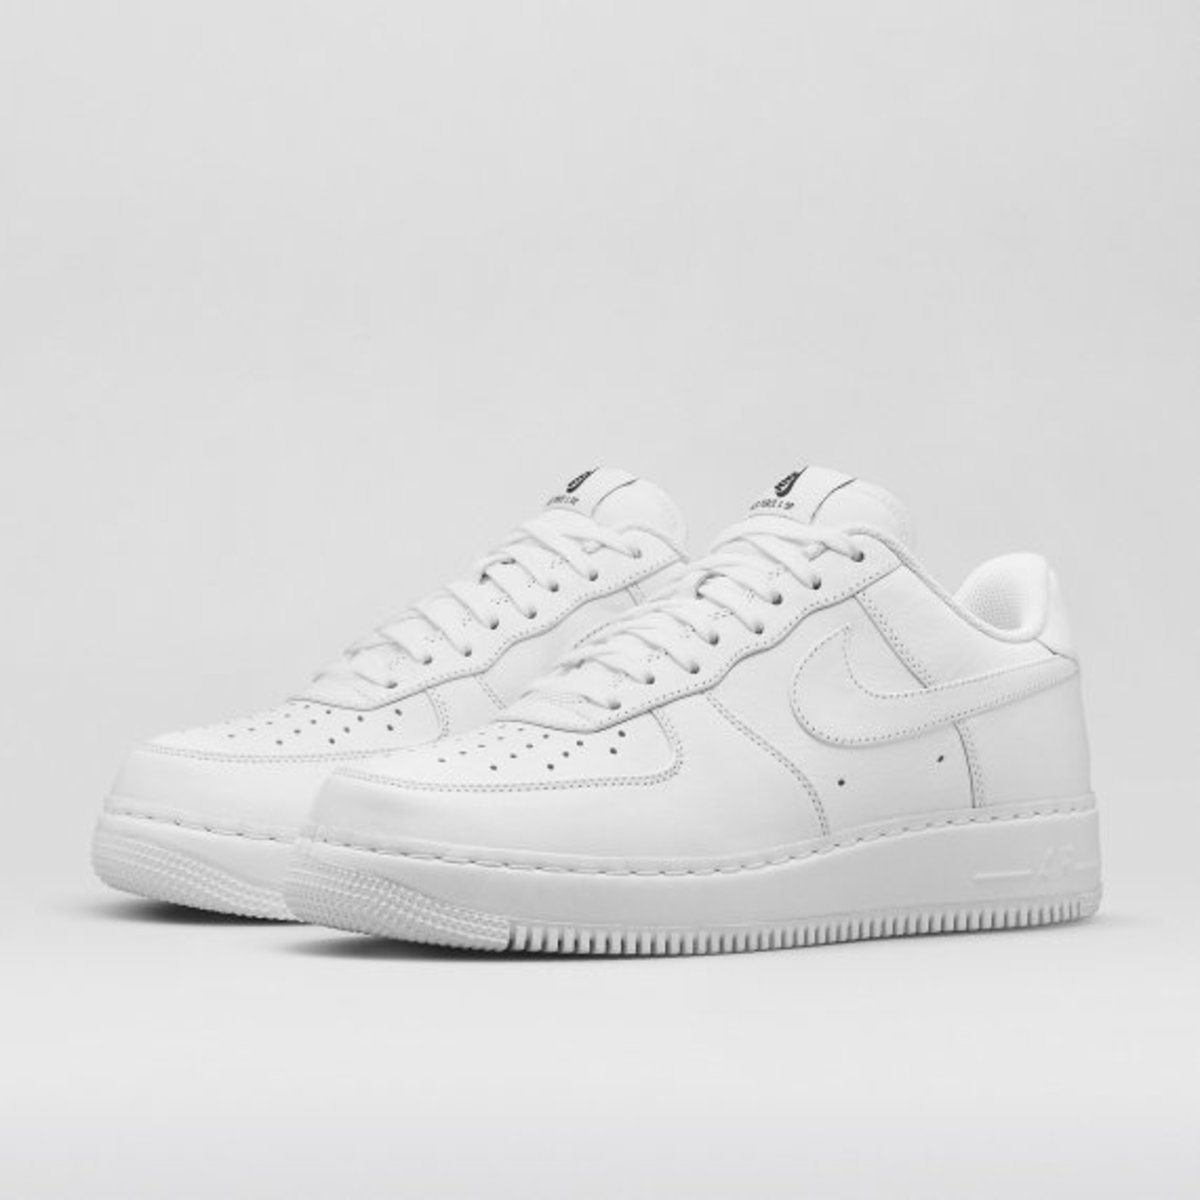 nike-air-force-1-cmft-collection-for-nikelab-04